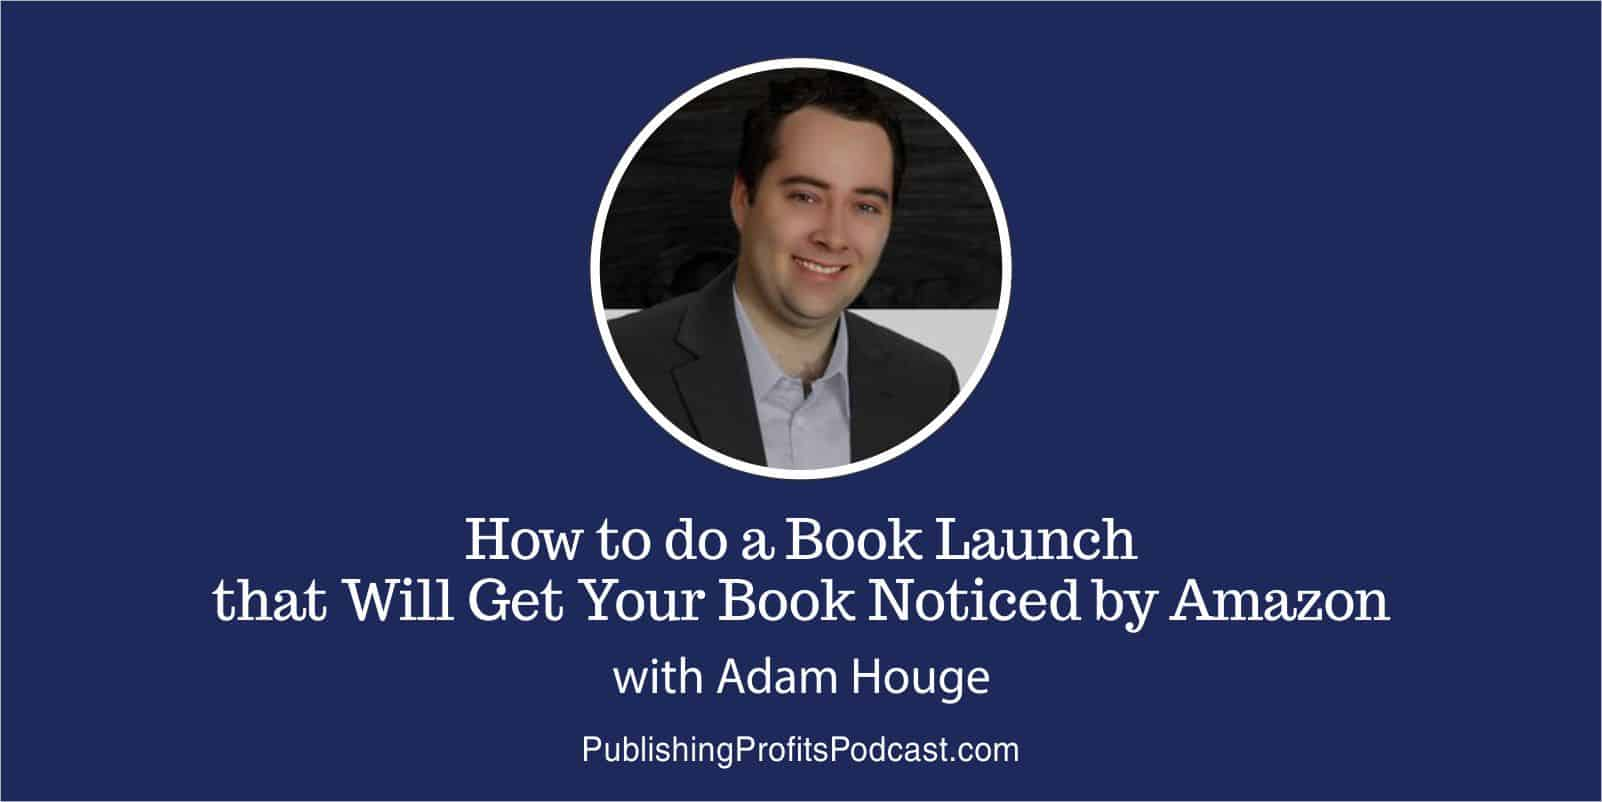 How to do a Book Launch with Adam Houge image